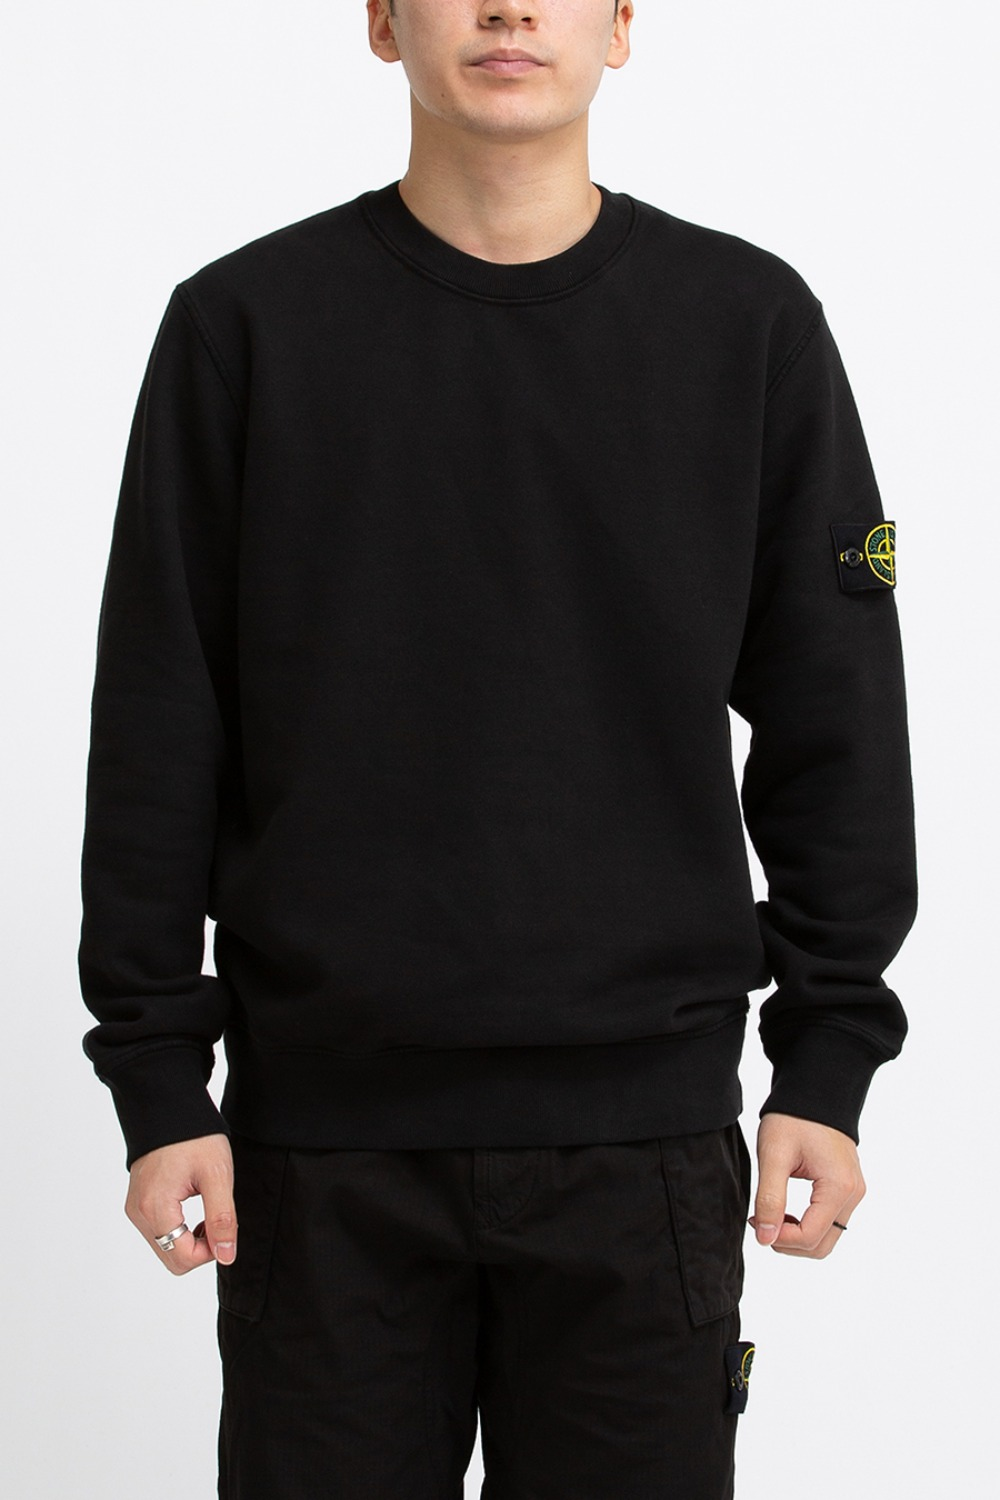 BRUSHED COTTON FLEECE GARMENT DYED SWEATSHIRT BLACK